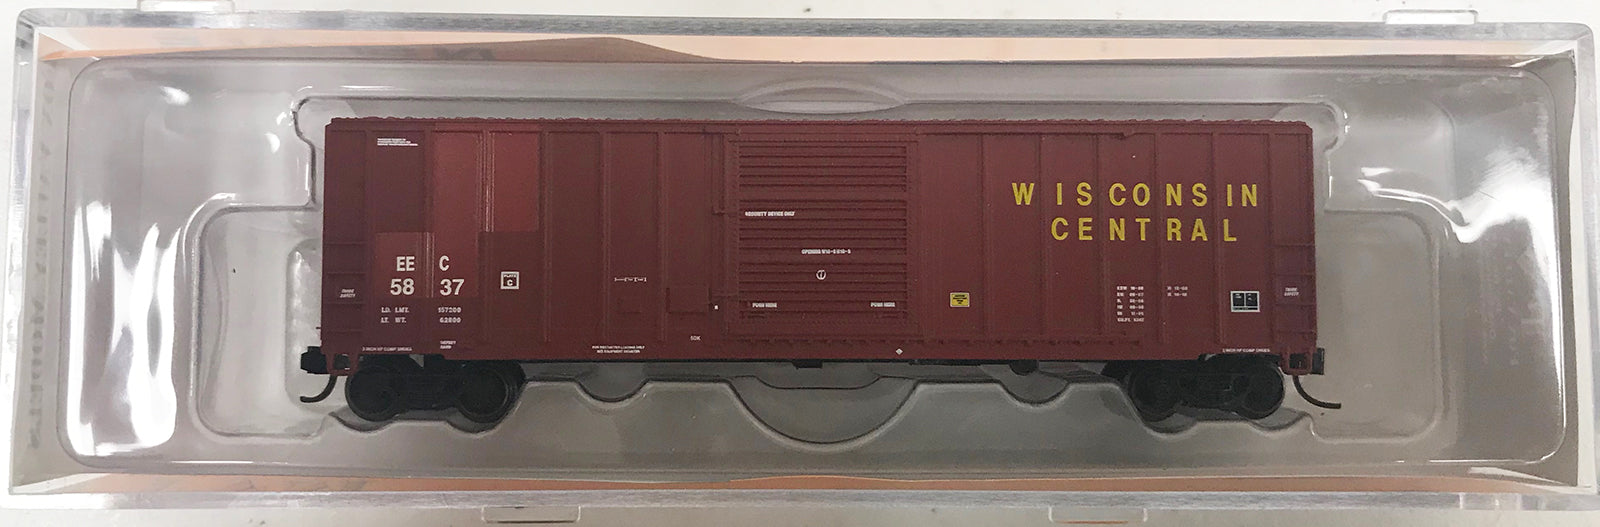 N 5347 Box - EEC #5837 Ex WC